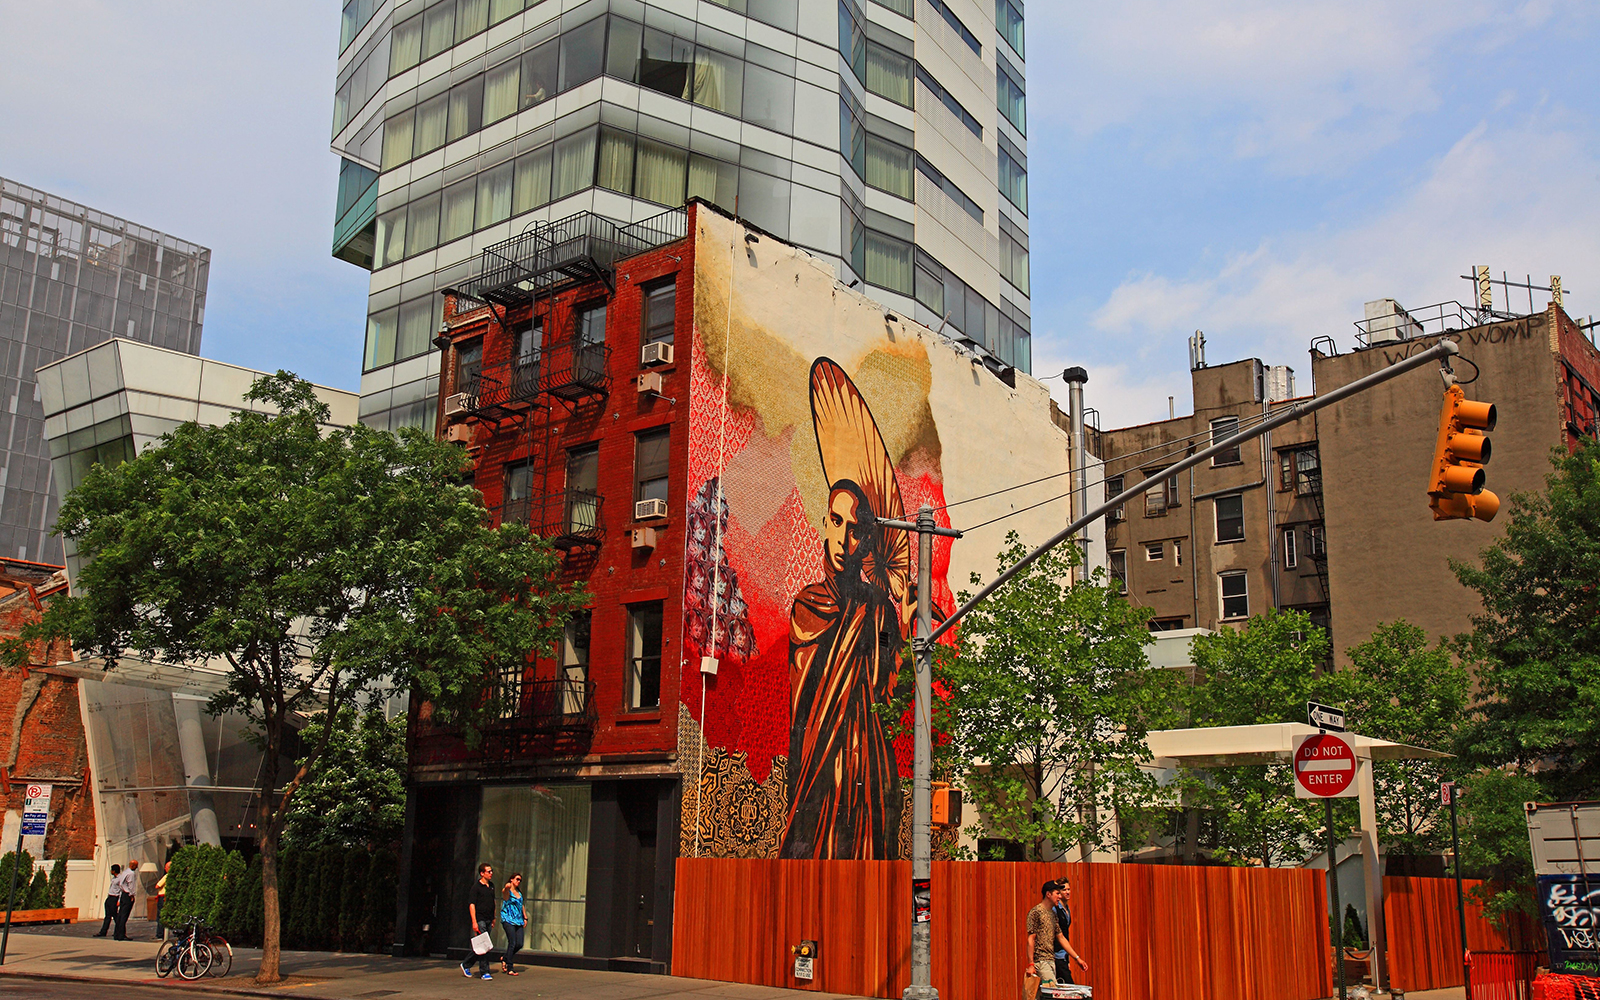 Ludlow Street Redux: The New New Renaissance on New York's Lower East Side